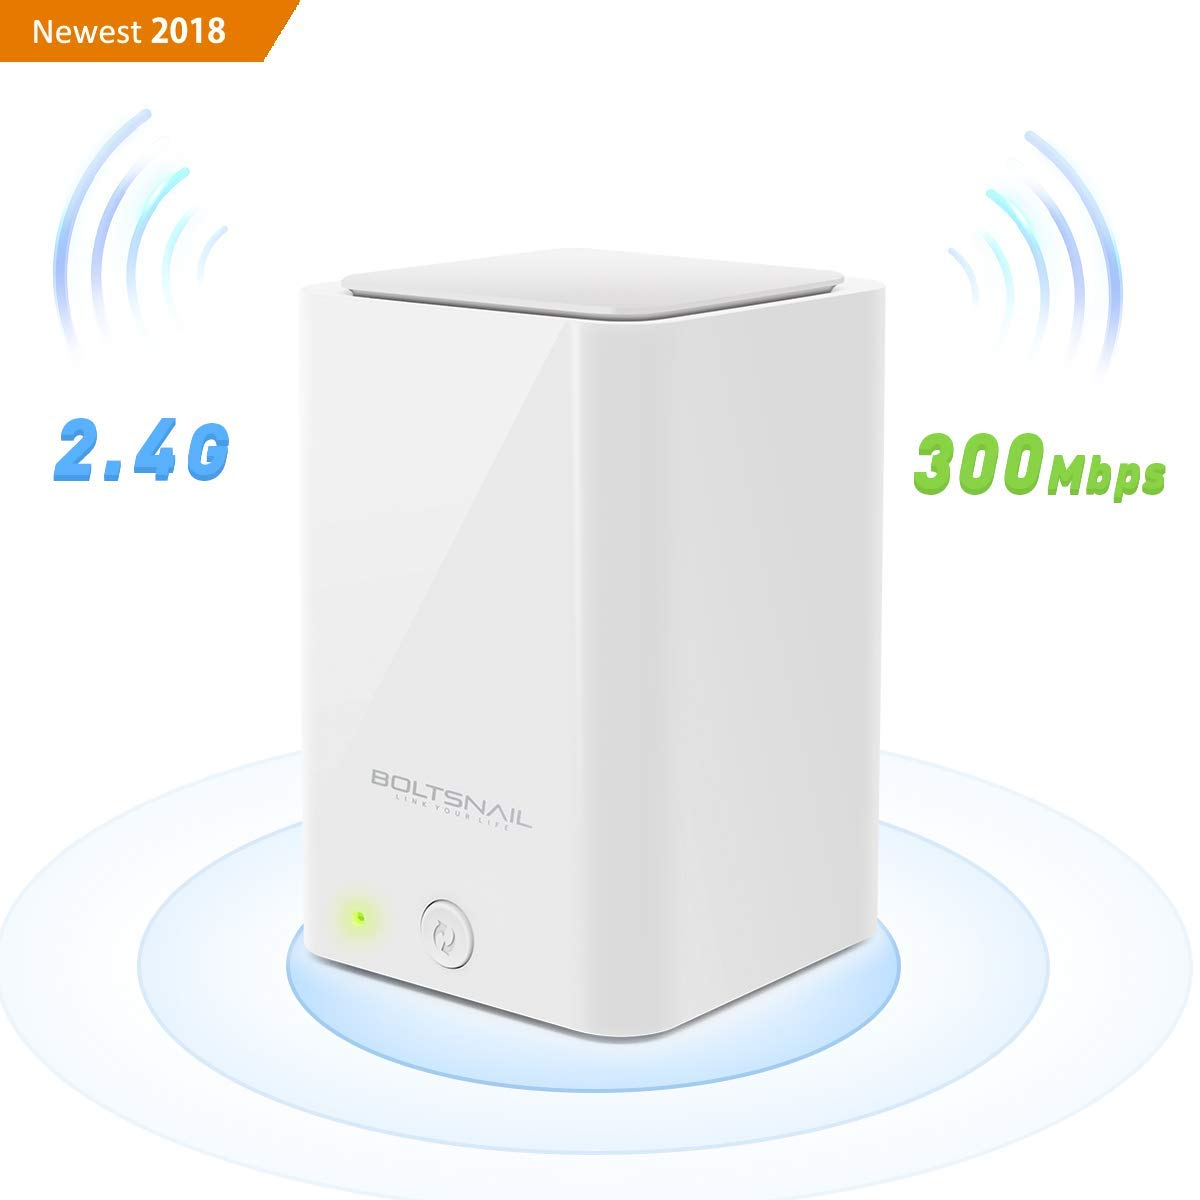 NEWEST2018 Box Type WiFi Extender Signal Booster BOLTSNAIL 4 in1 Wireless Wi-Fi Long Range Repeater Bridge Router Wi Fi Network Access Point Signals and Extend to Houses and Alexa Devices by BOLTSNAIL (Image #1)